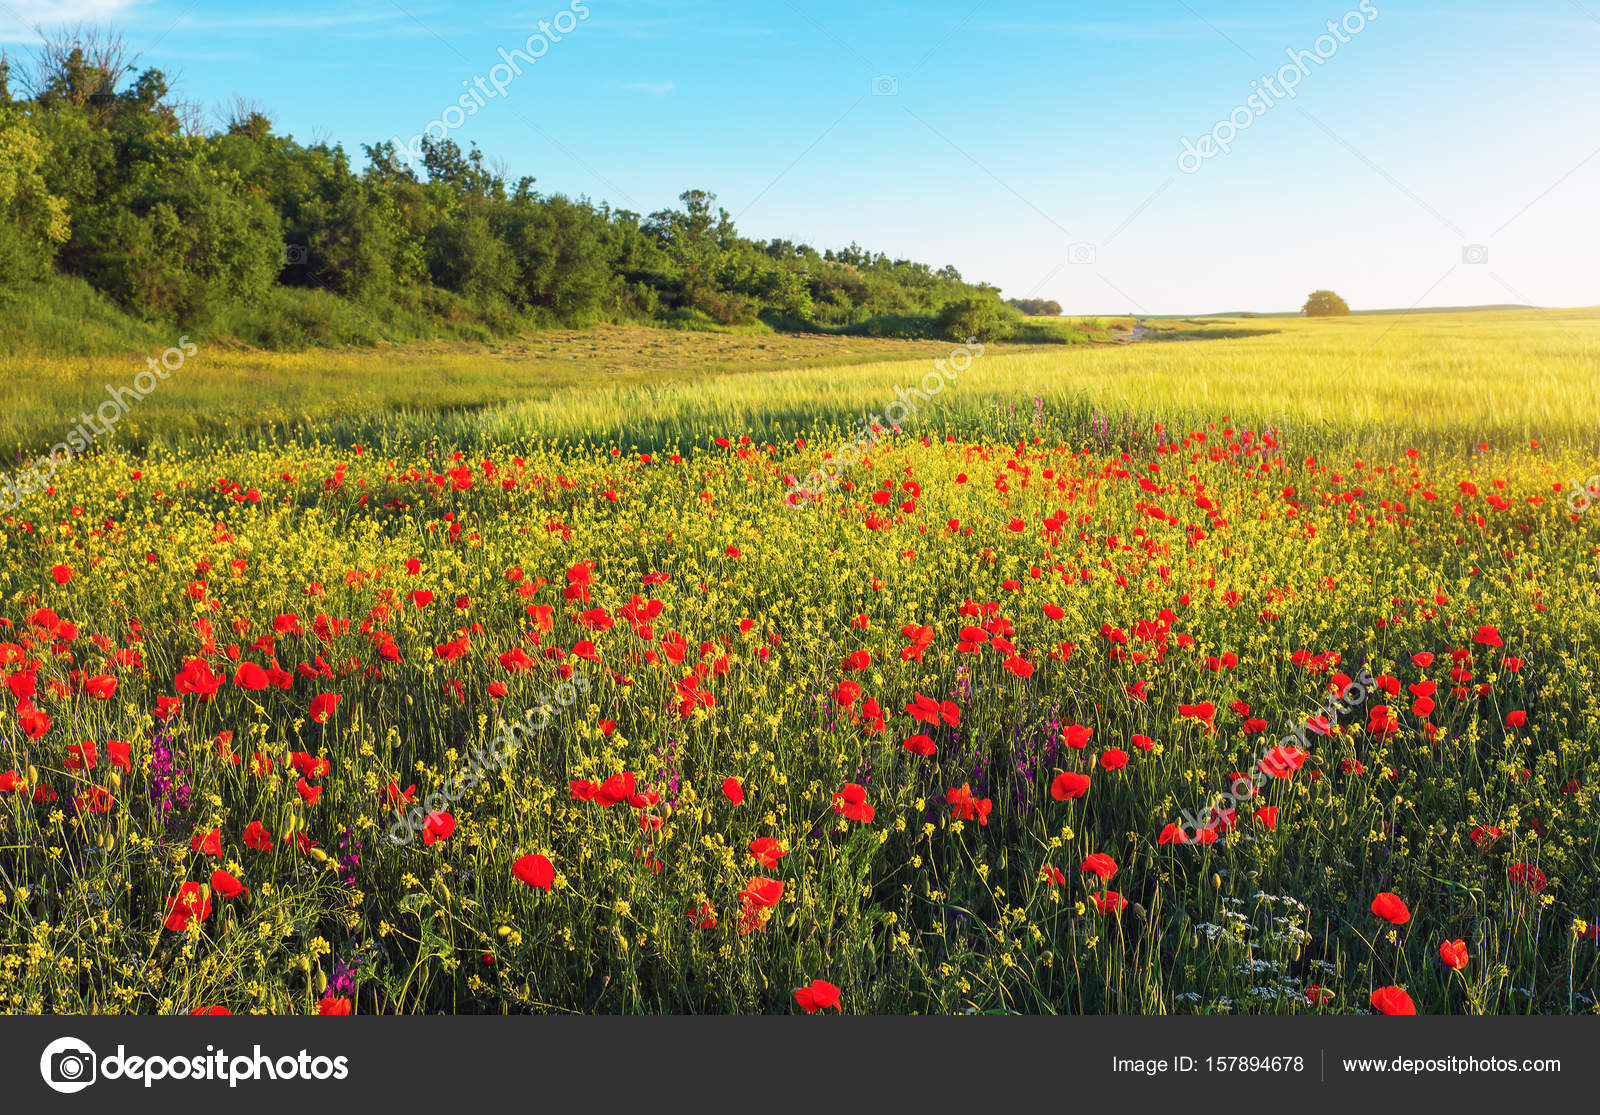 Spring Flowers In Field Beautiful Landscapes Stock Photo